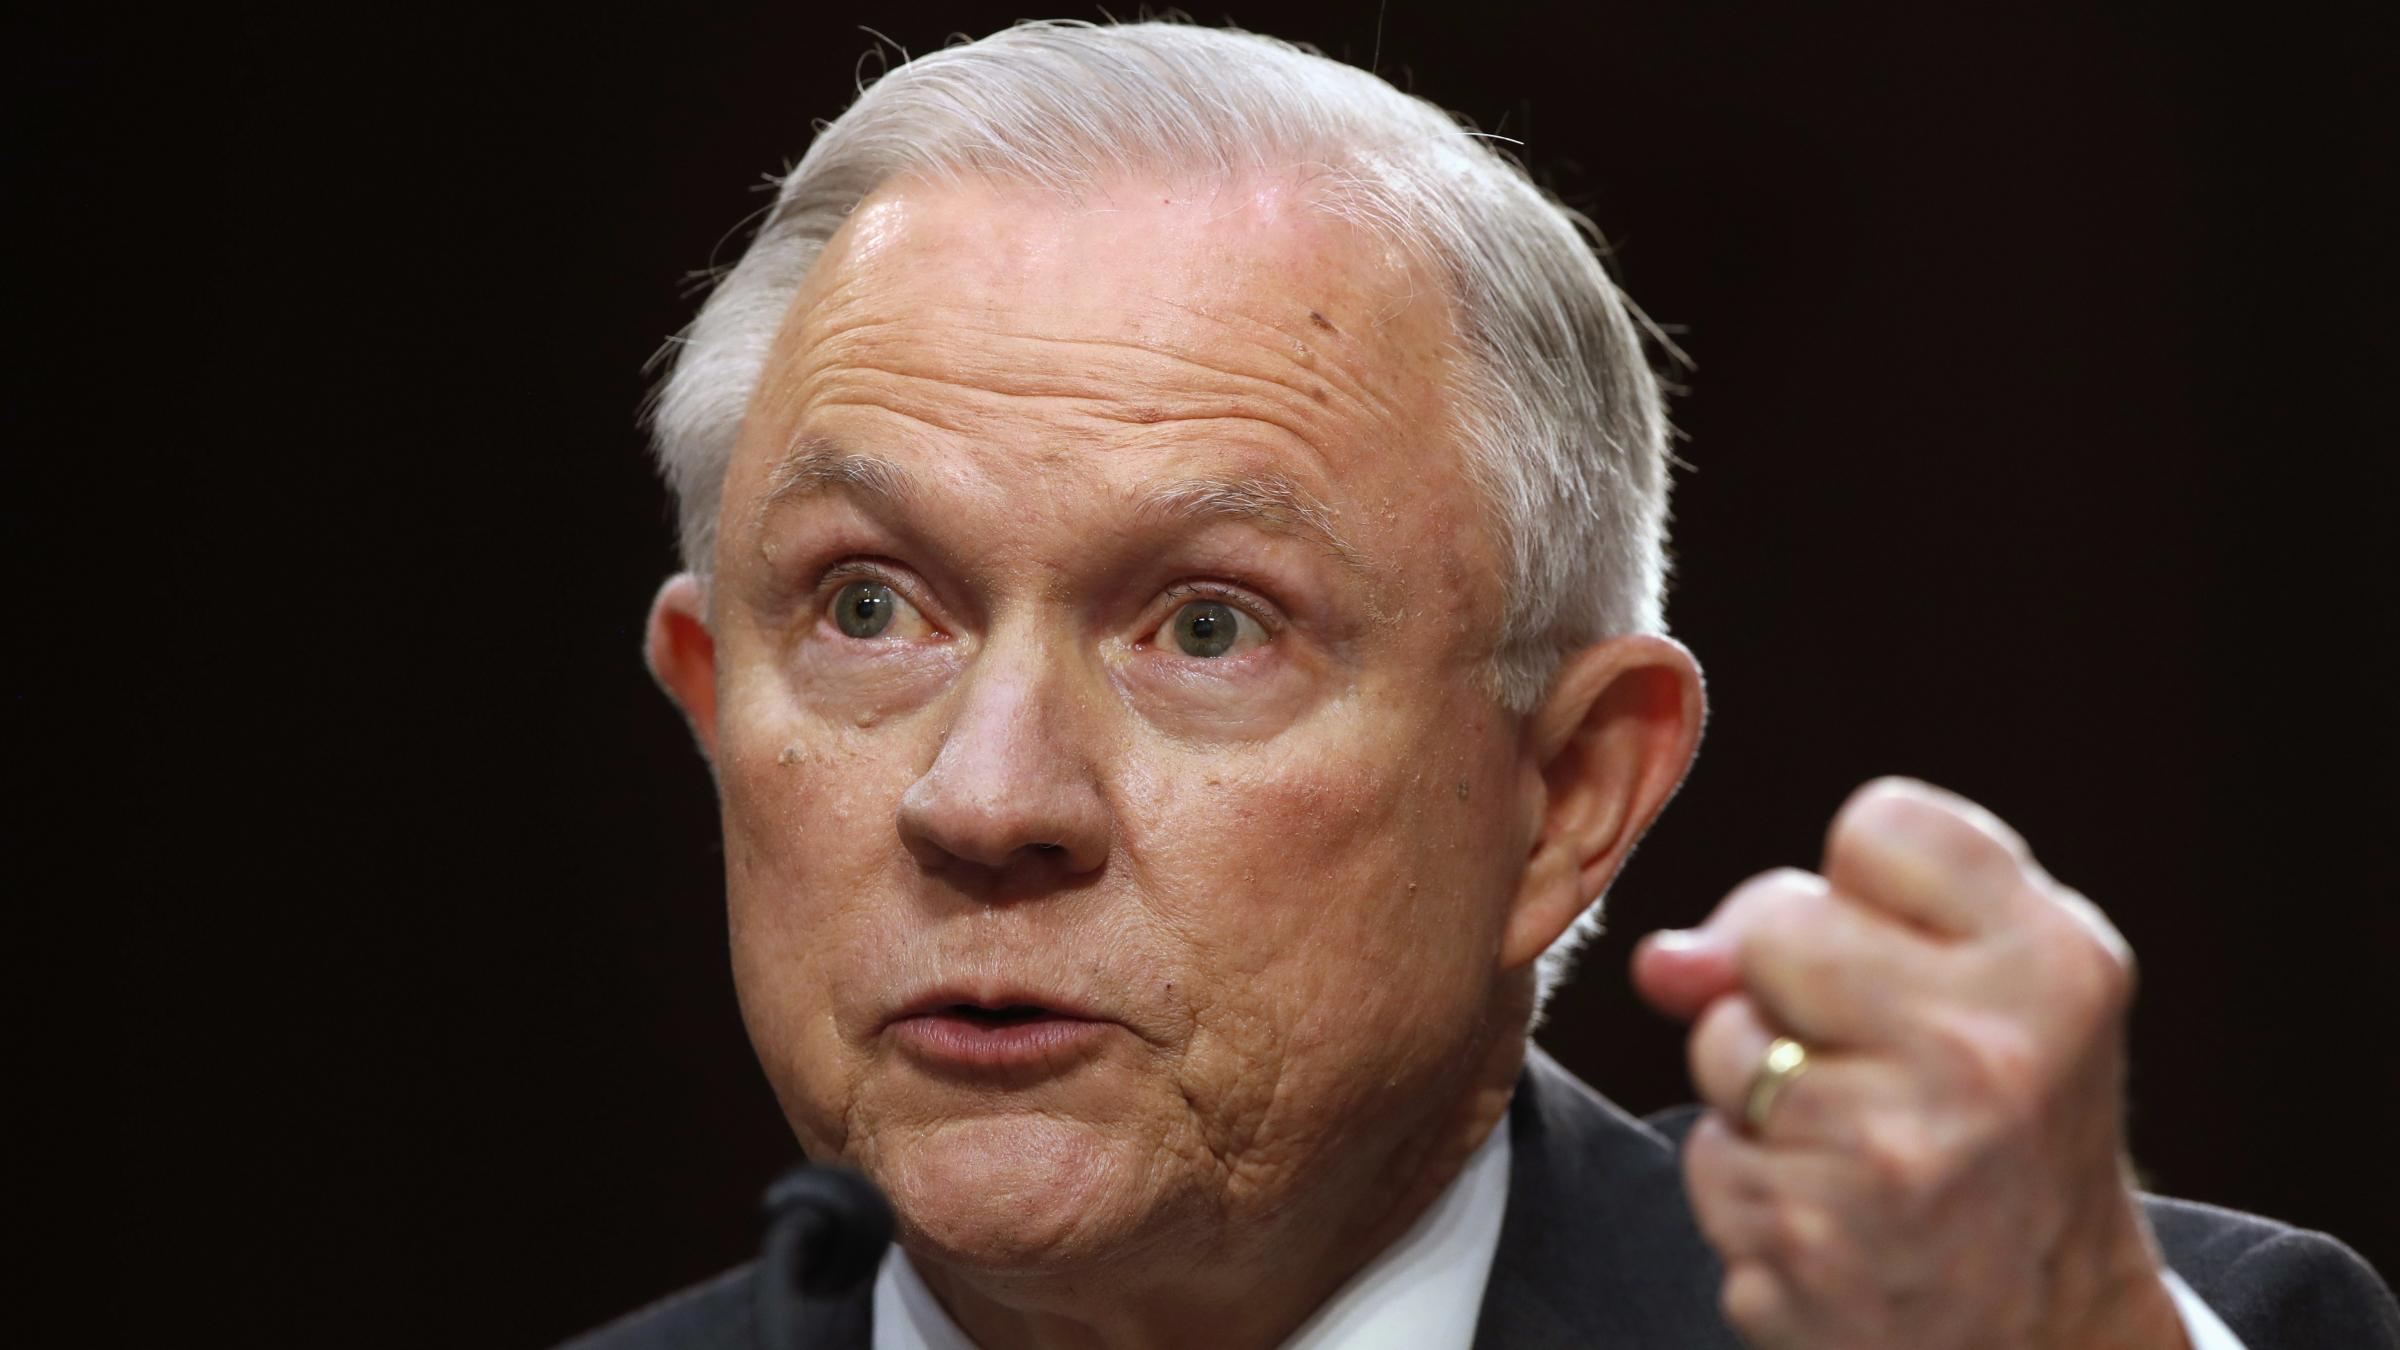 AG Jeff Sessions testifies before Senate intelligence committee: 4 key takeaways